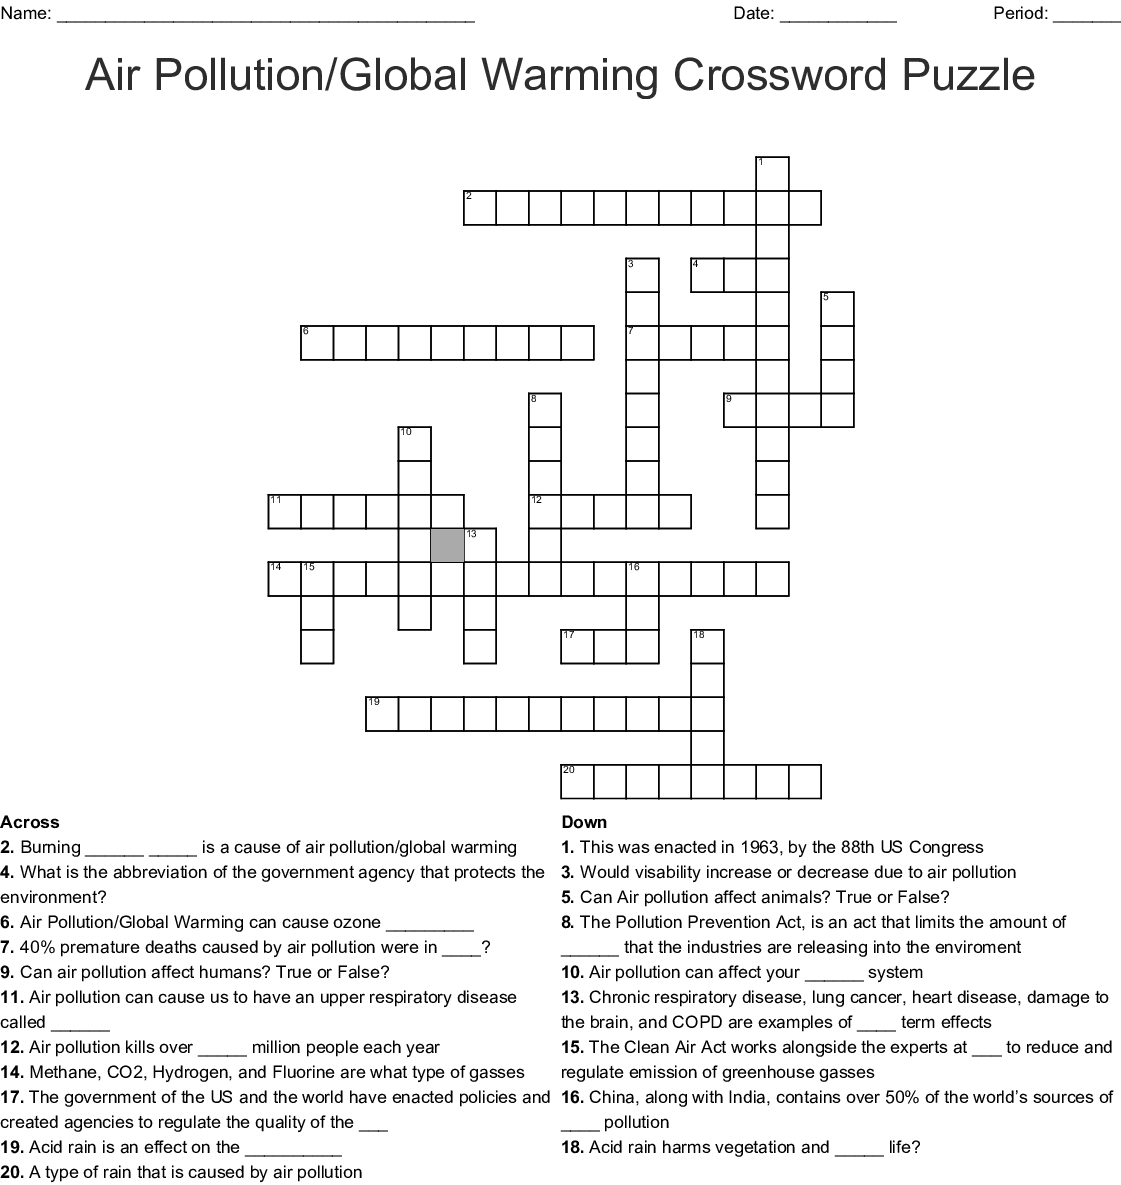 Air Pollution/global Warming Crossword Puzzle Crossword - Wordmint - Global Warming Crossword Puzzle Printable